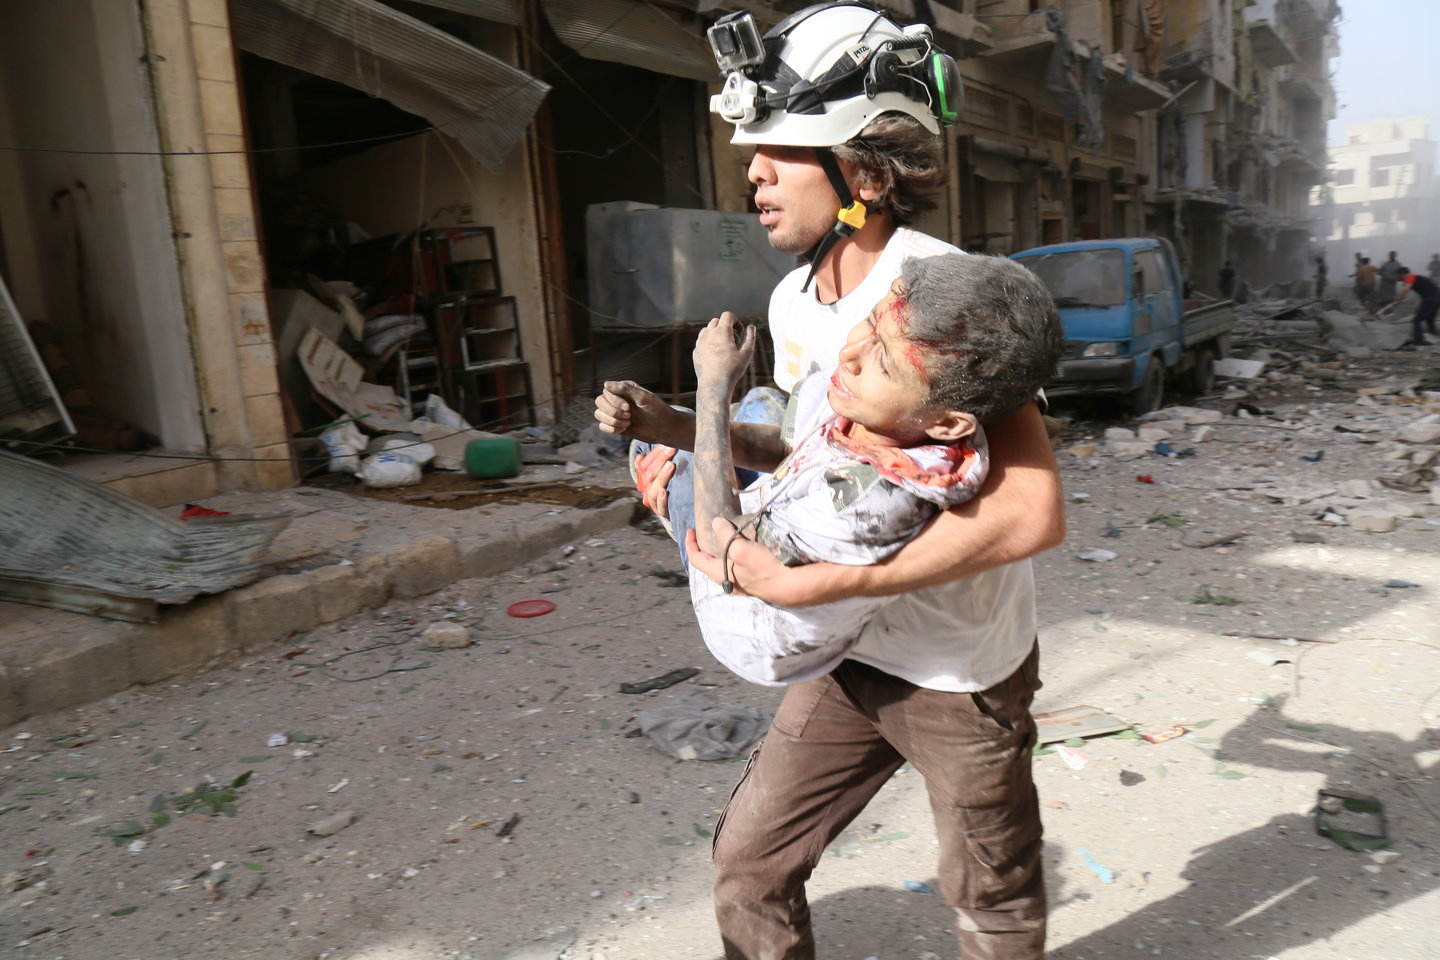 The volunteers rescue civilians when houses collapse as a result of bombardment.